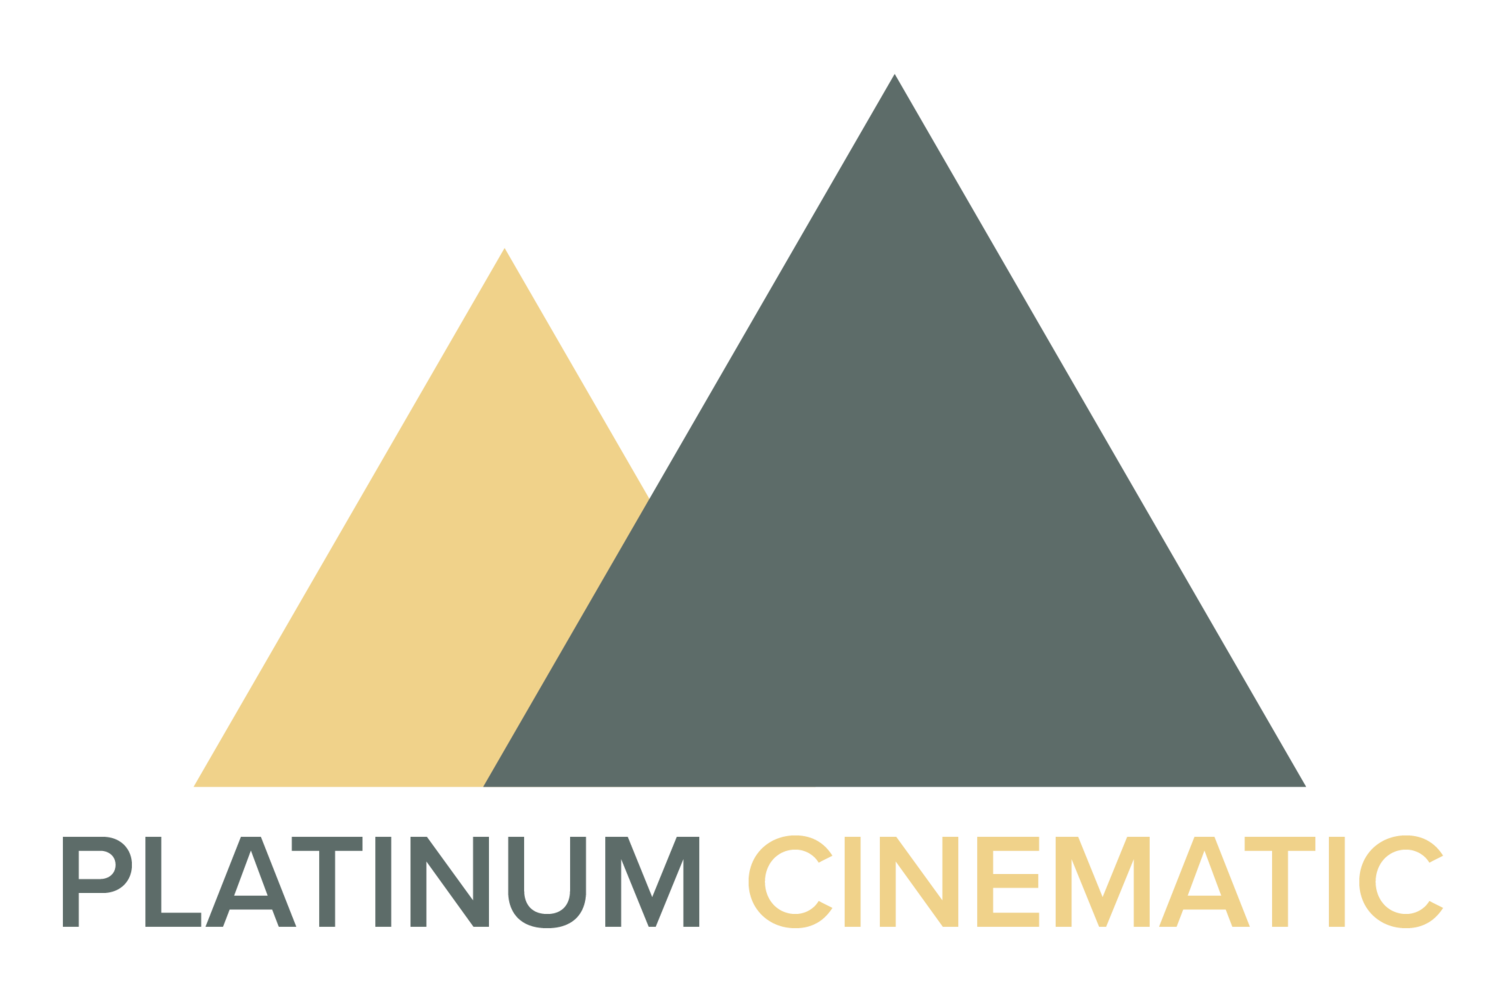 Platinum Cinematic - Movies That Sell Your Home